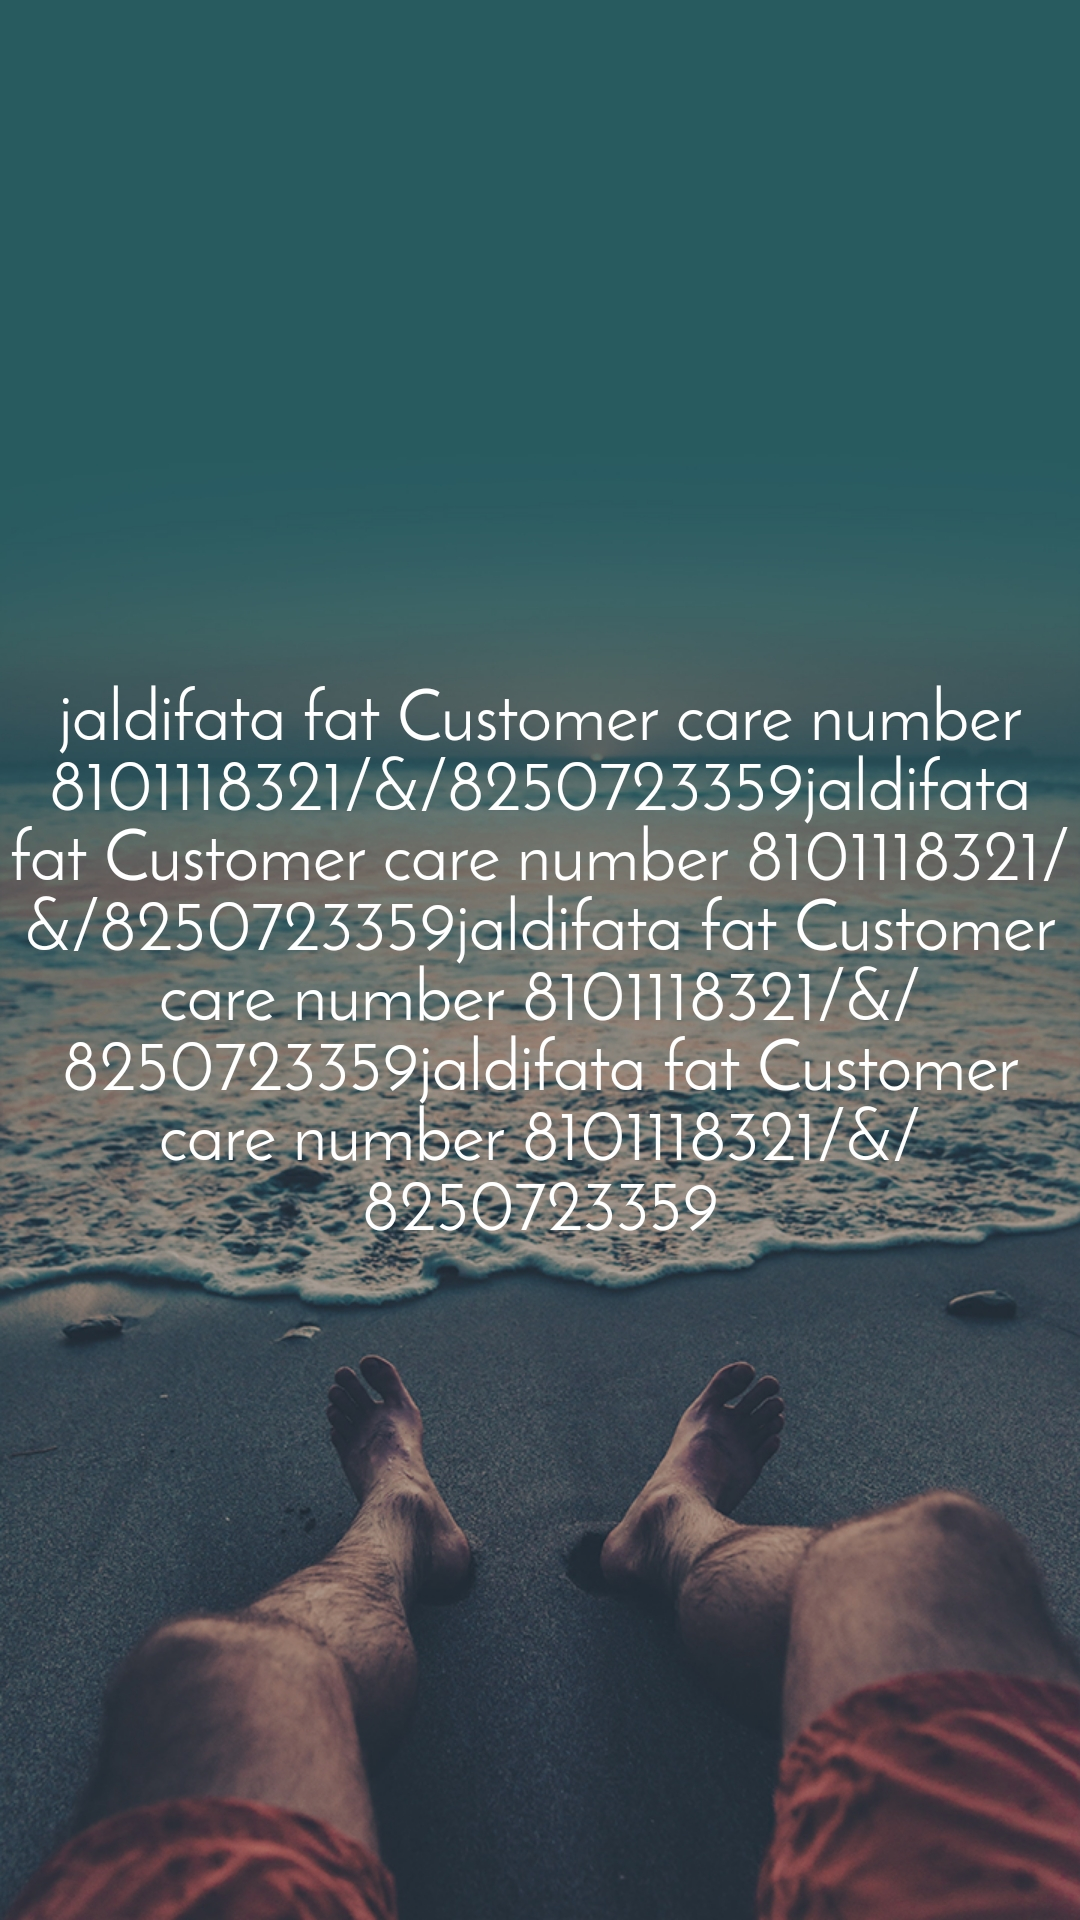 jaldifata fat Customer care number 8101118321/&/8250723359jaldifata fat Customer care number 8101118321/&/8250723359jaldifata fat Customer care number 8101118321/&/8250723359jaldifata fat Customer care number 8101118321/&/8250723359